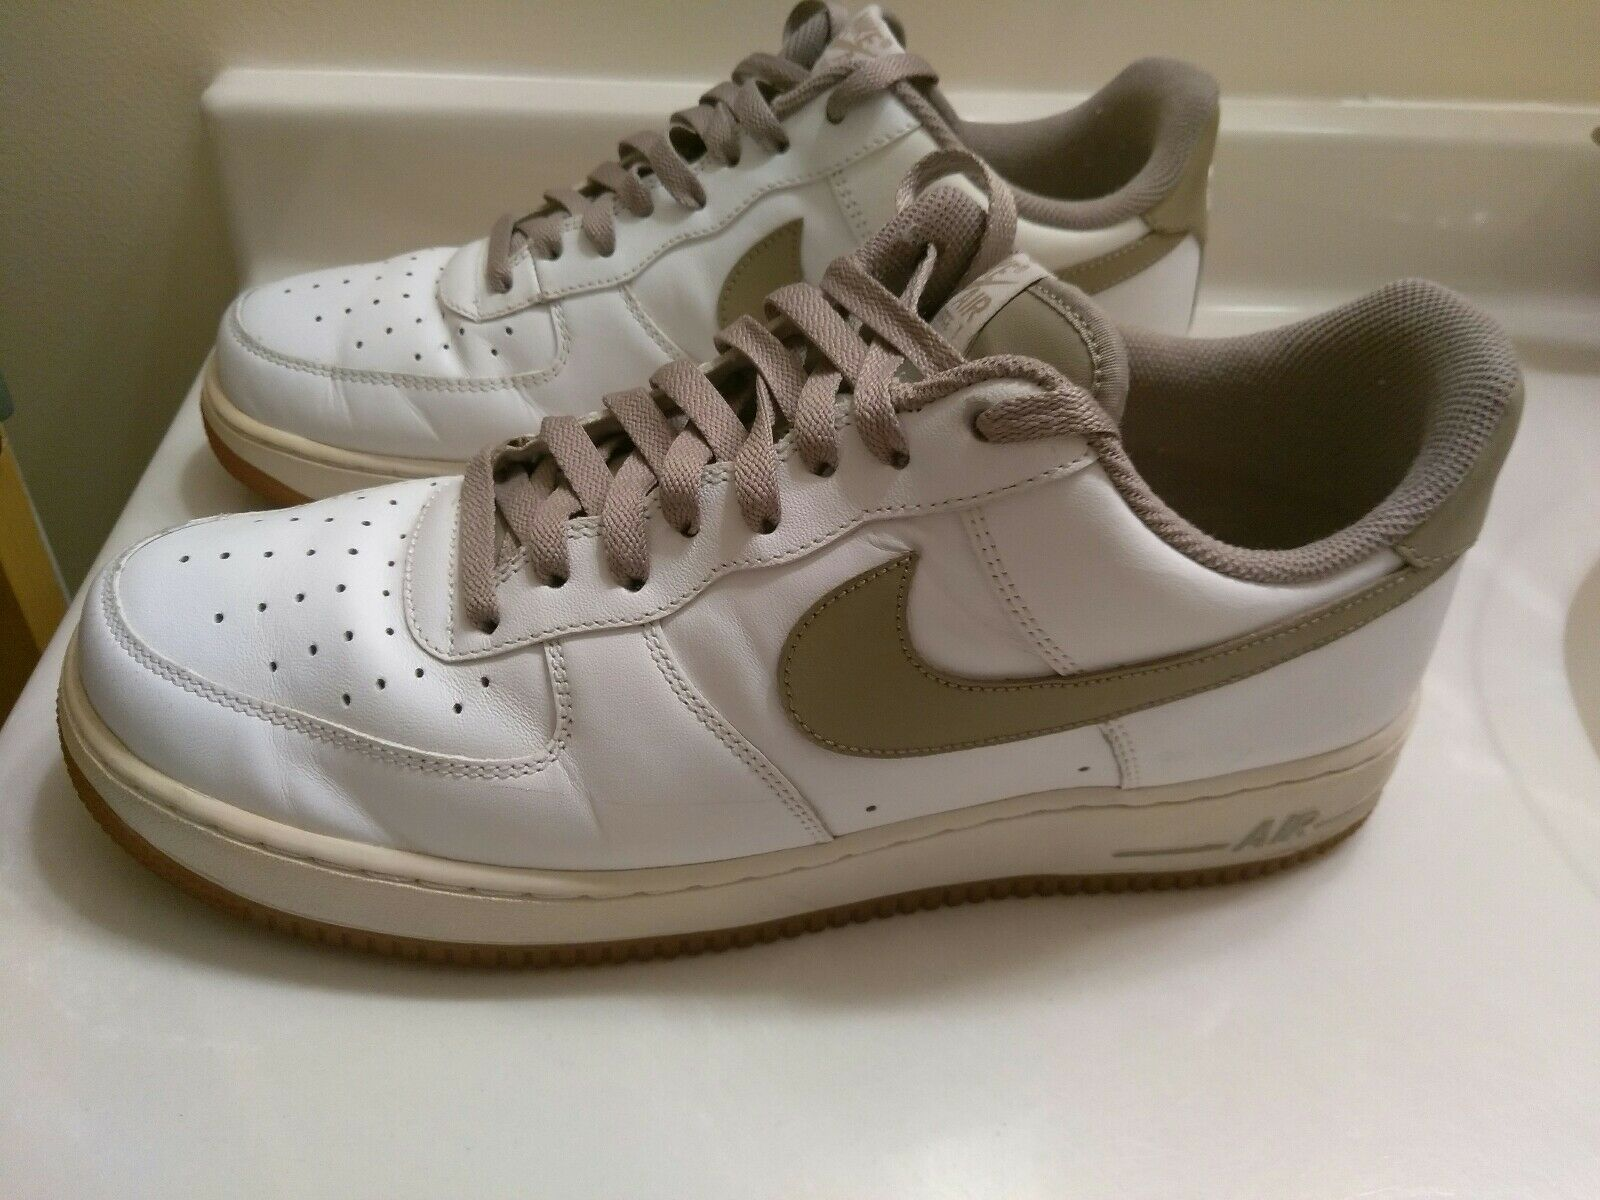 Nike Air Force Men's White / Olive Leather Shoes Size 11  315122-123